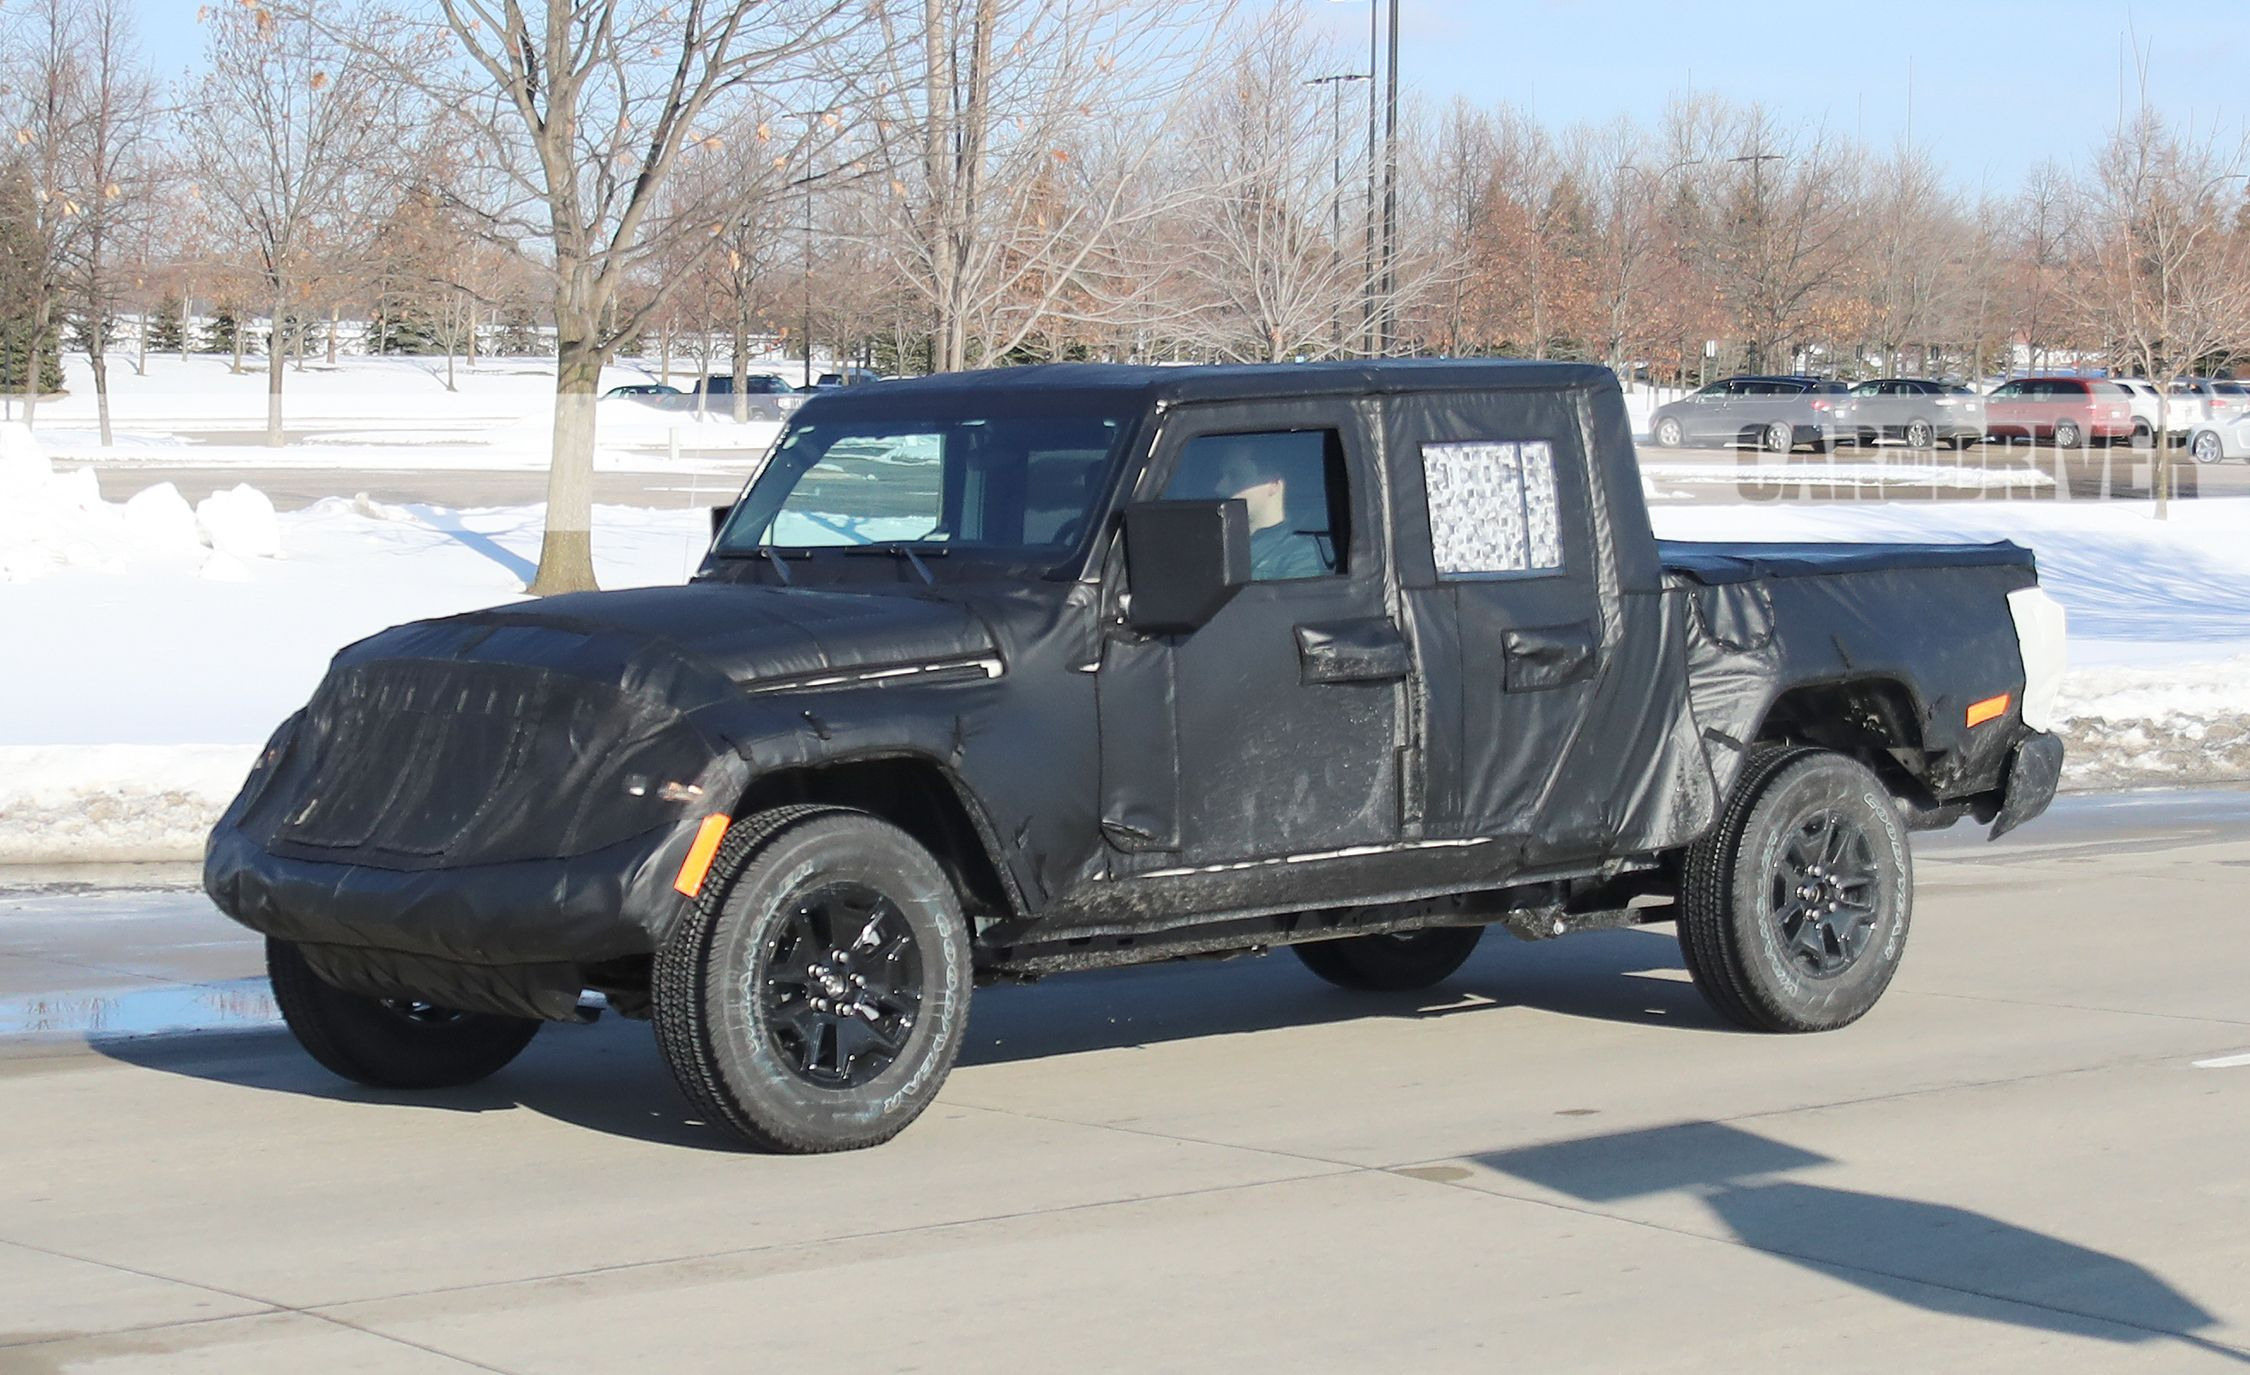 Jeep Wrangler Pickup Reviews   Jeep Wrangler Pickup Price, Photos, And  Specs   Car And Driver